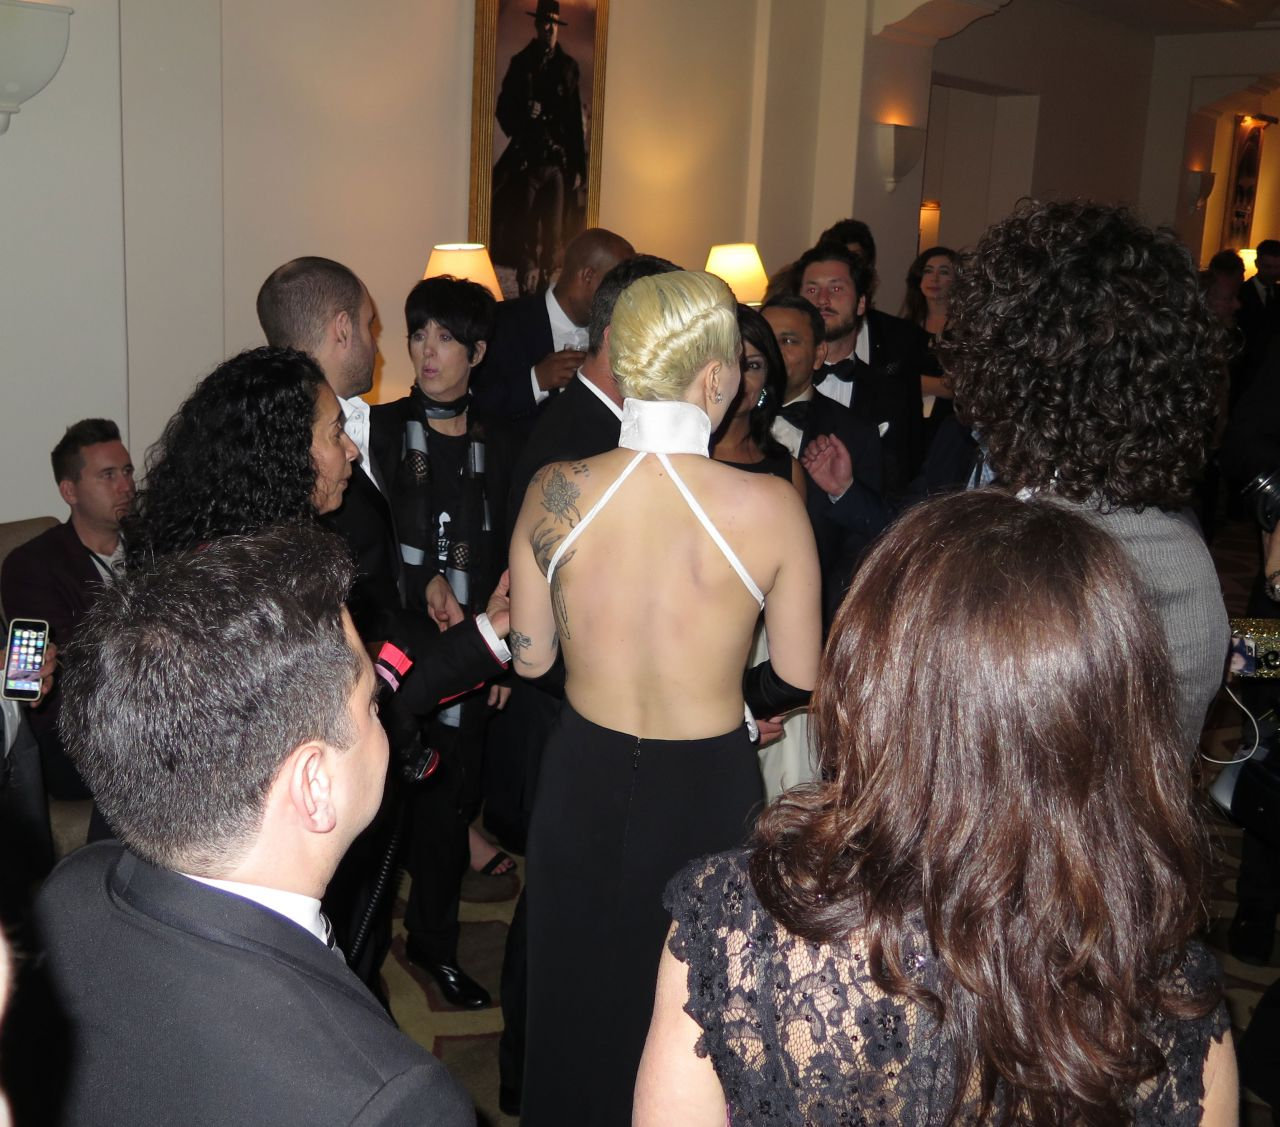 lady-gaga-weinstein-company-s-pre-oscar-dinner-in-beverly-hills-2-27-2016-8